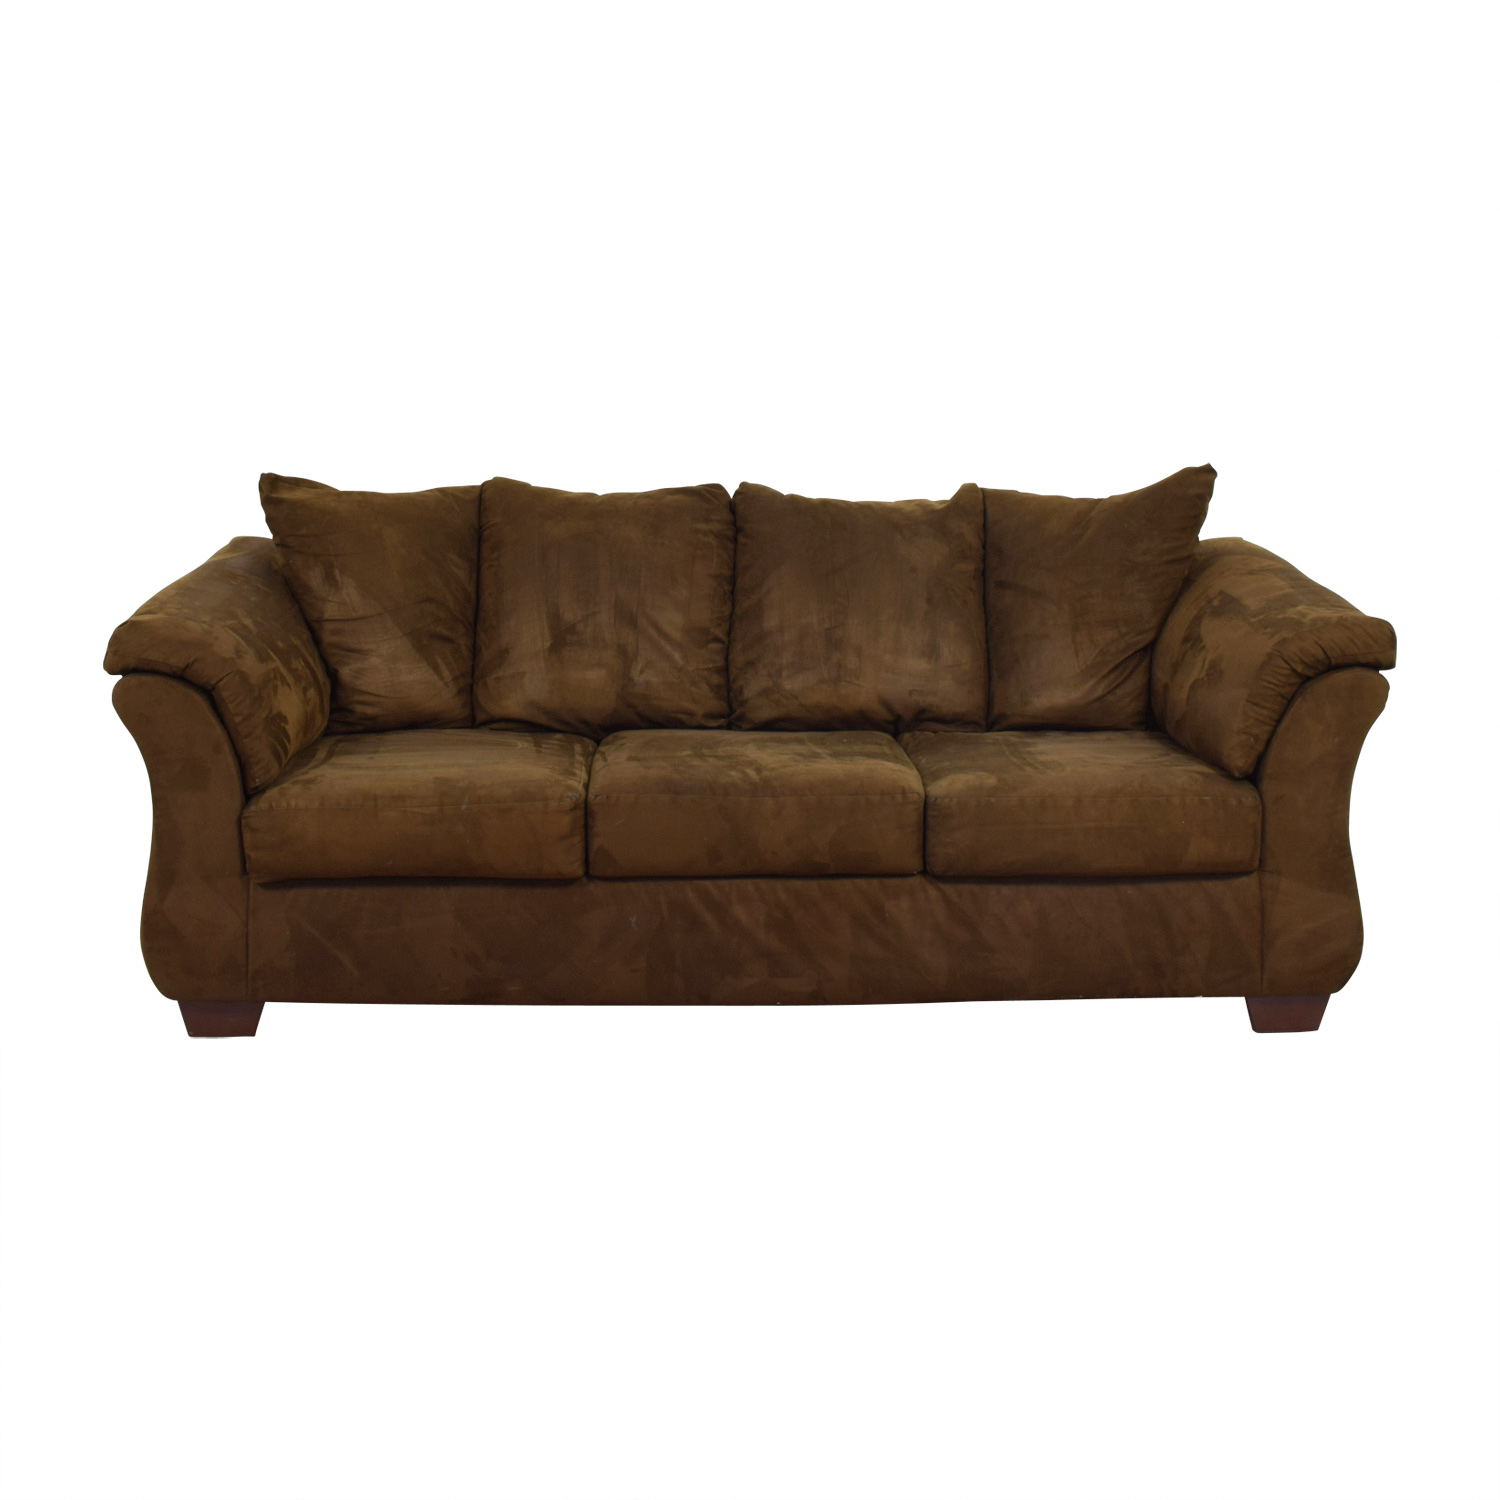 Ashley Furniture Ashley Furniture Three-Cushion Brown Couch for sale